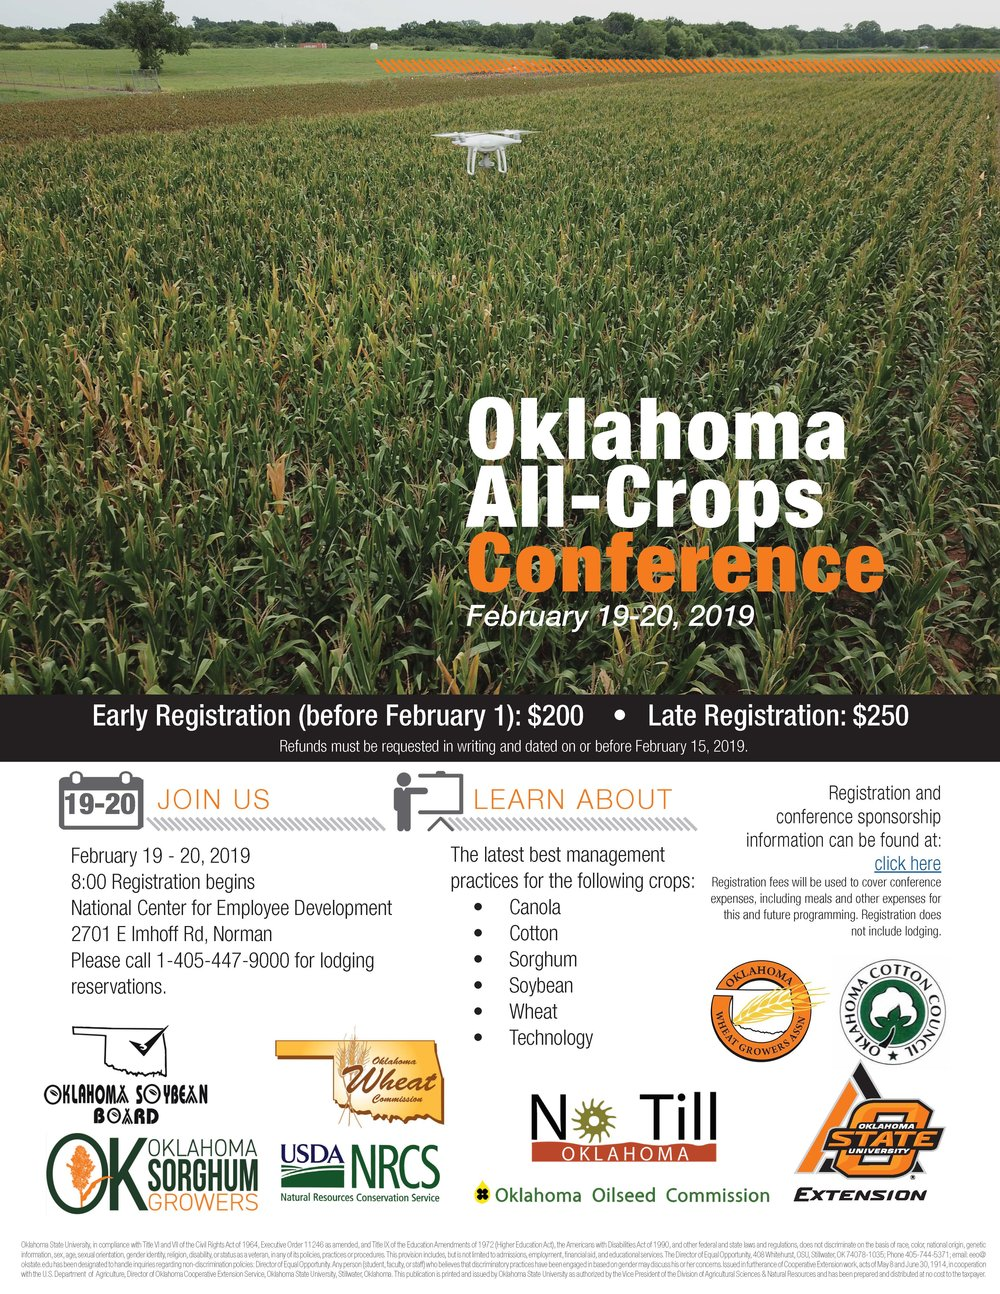 2019 All-crops Conference flyer announcement.jpg